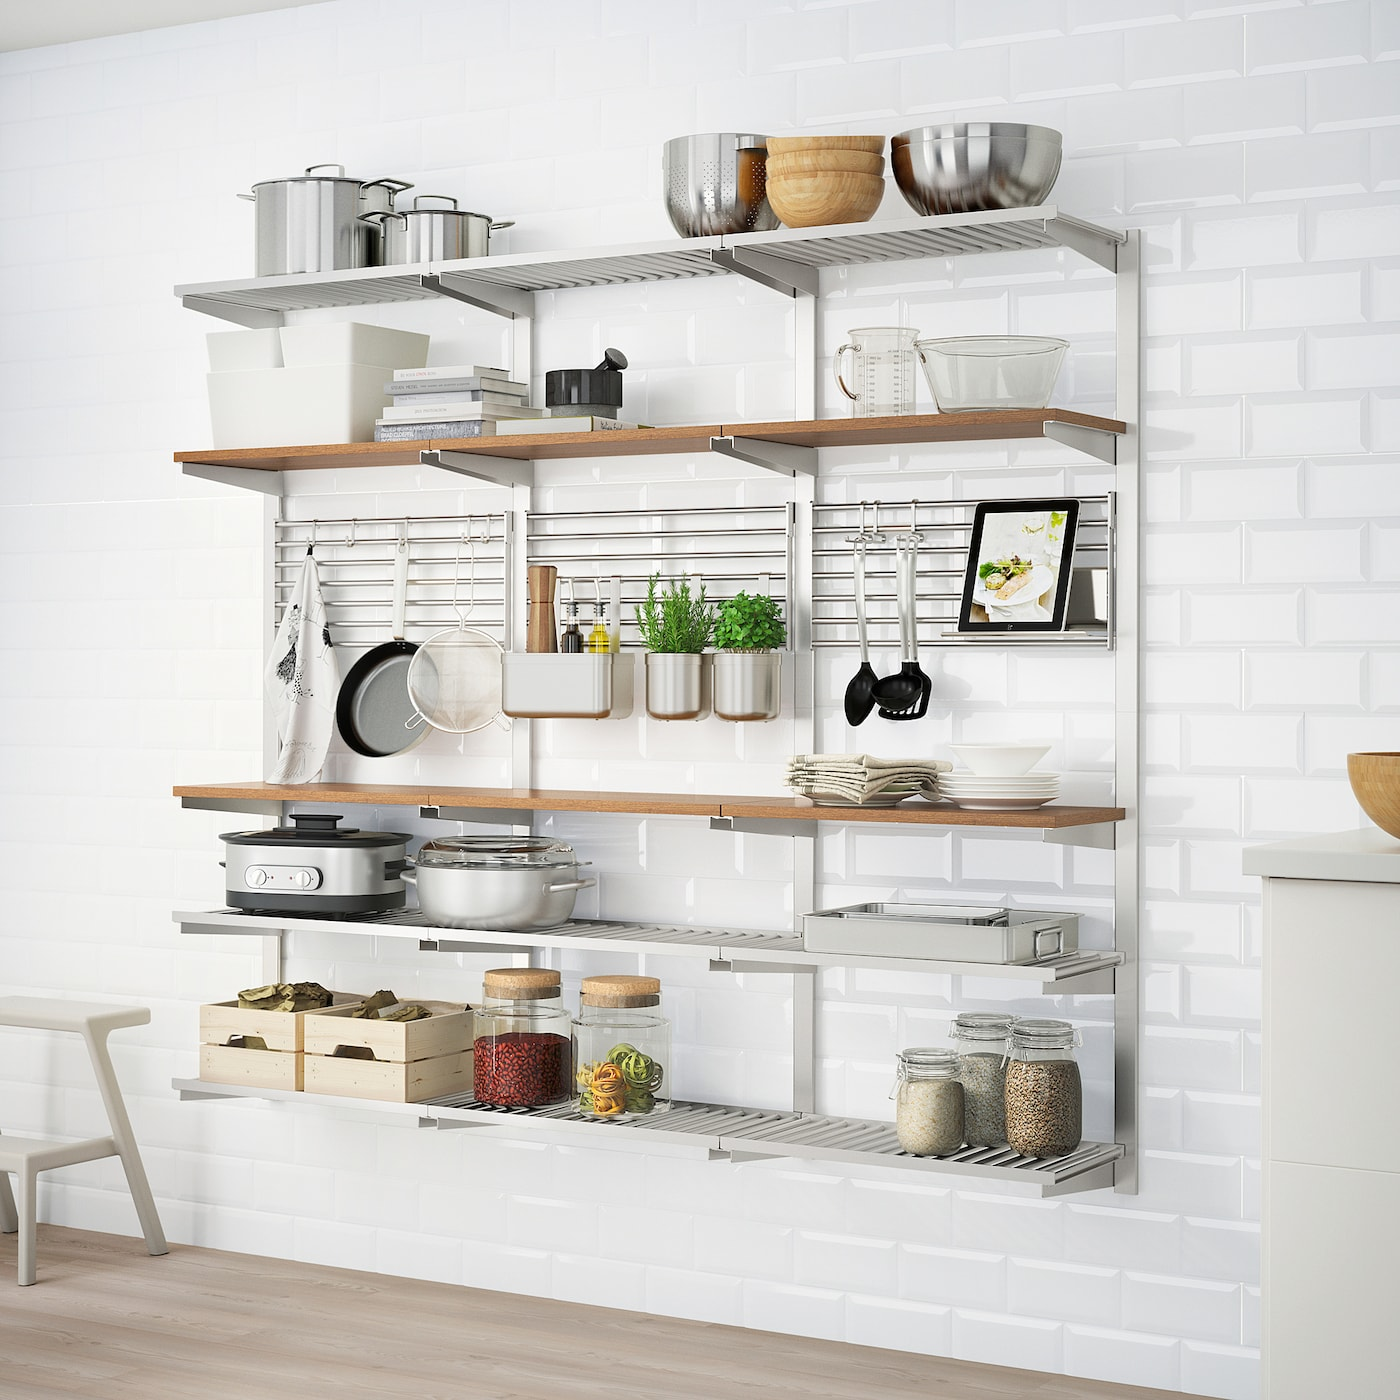 fors-suspension-rail-with-shelf-wll-grid-stainless-steel-ash__0870572_PE688443_S5